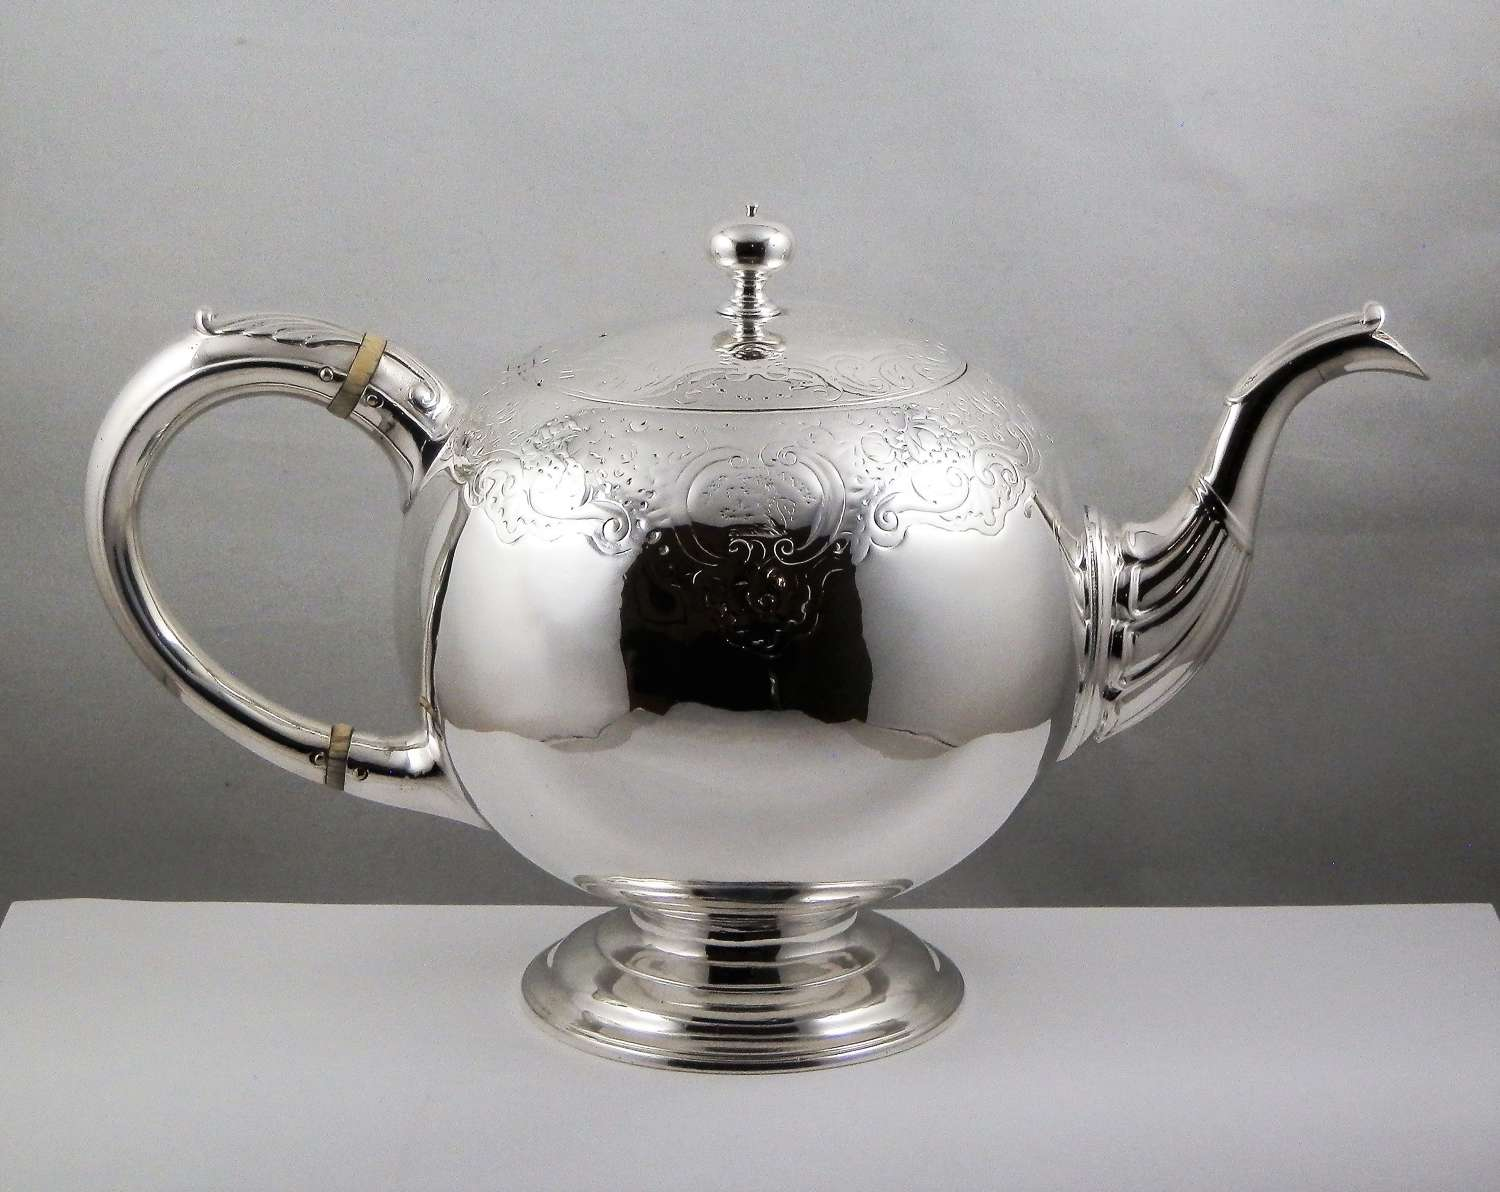 George II Scottish silver bullet teapot, James Ker 1746